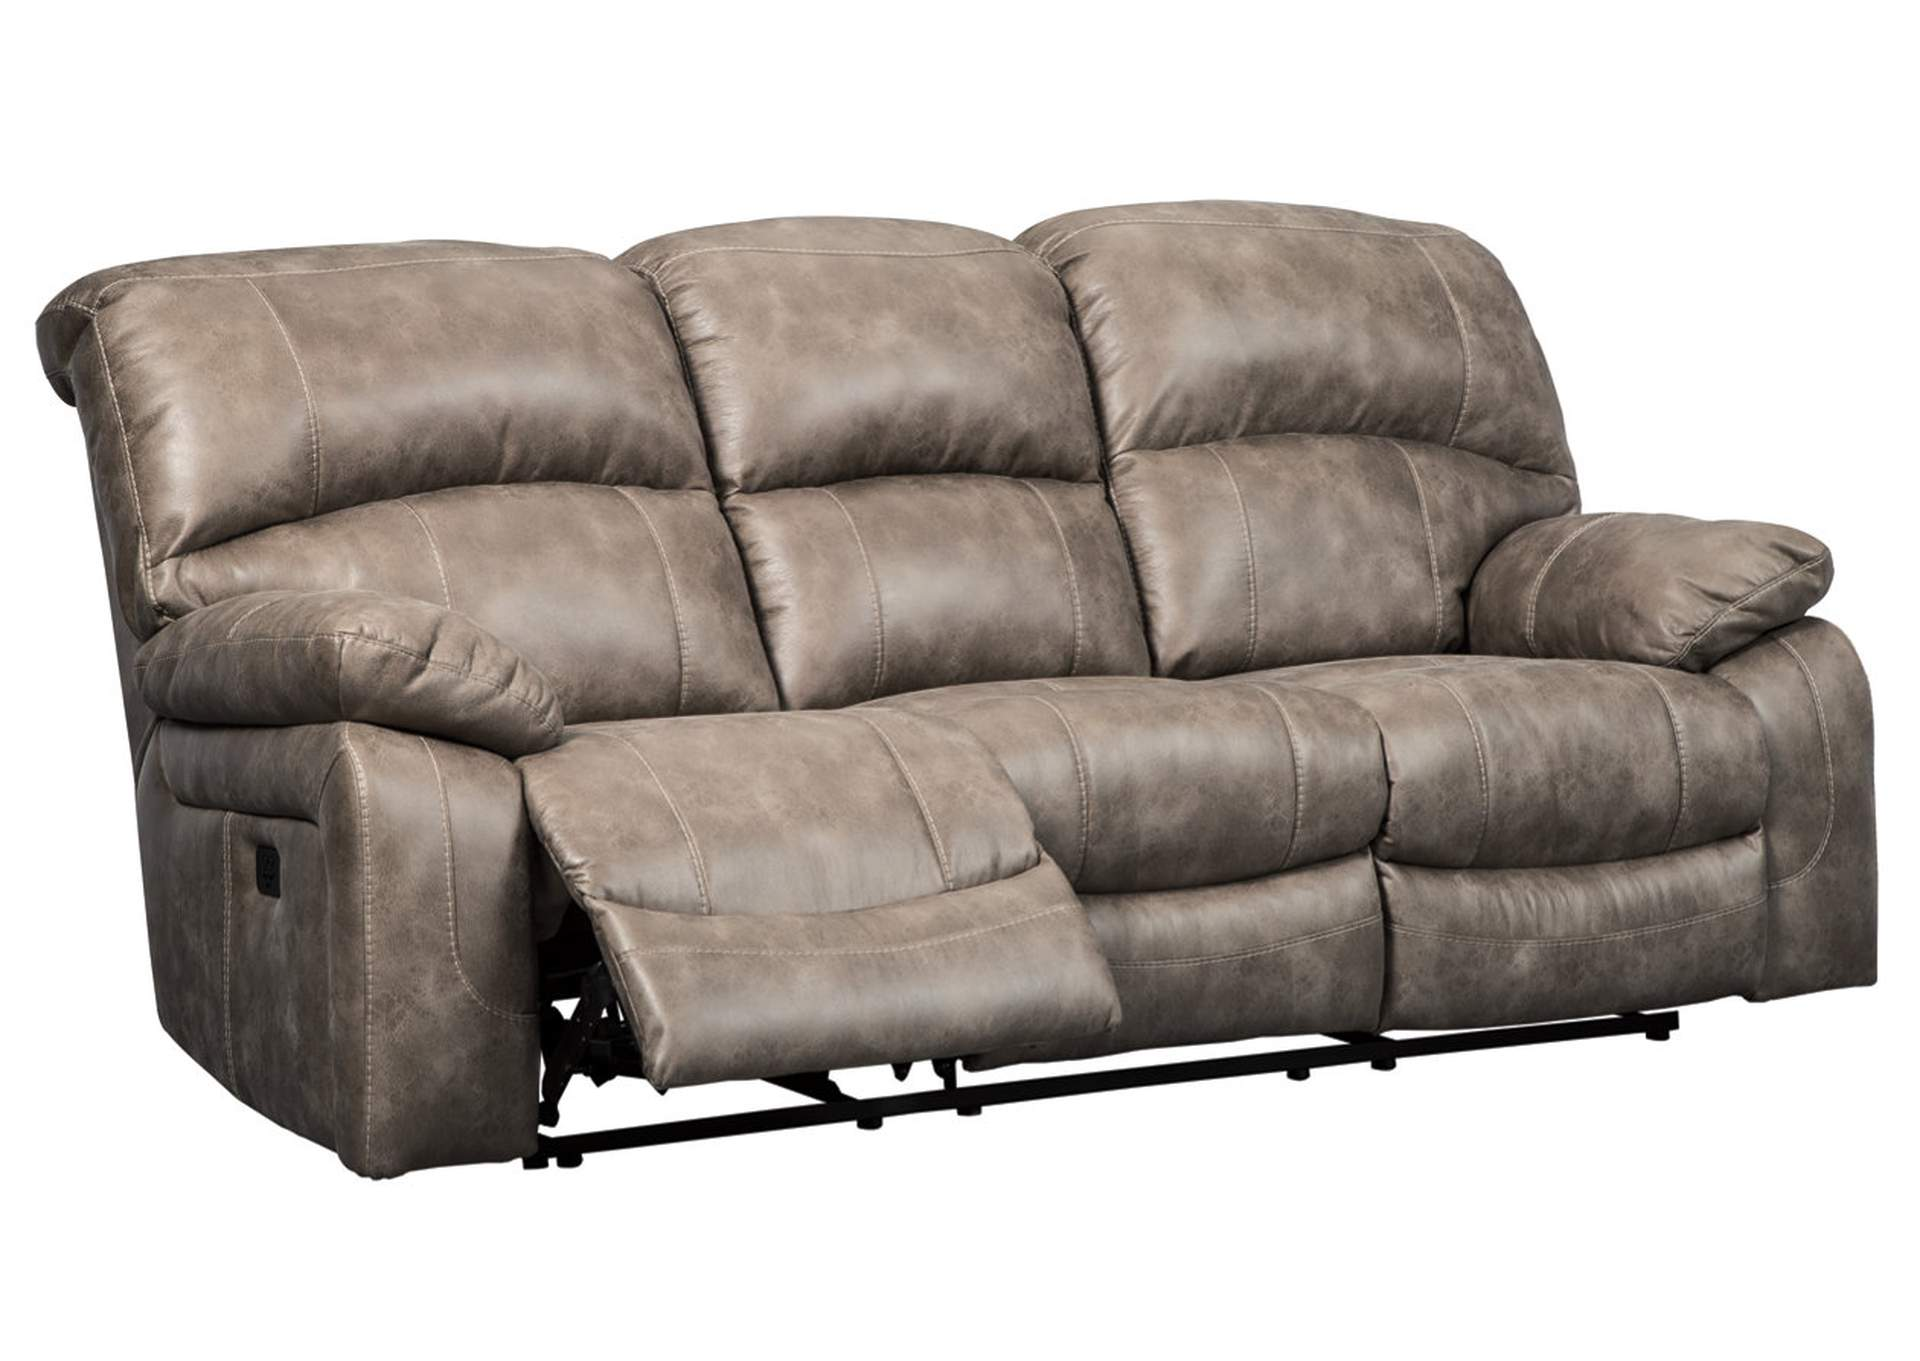 Dunwell Driftwood Power Recliner Sofa w/Adjustable Headrest,Signature Design By Ashley